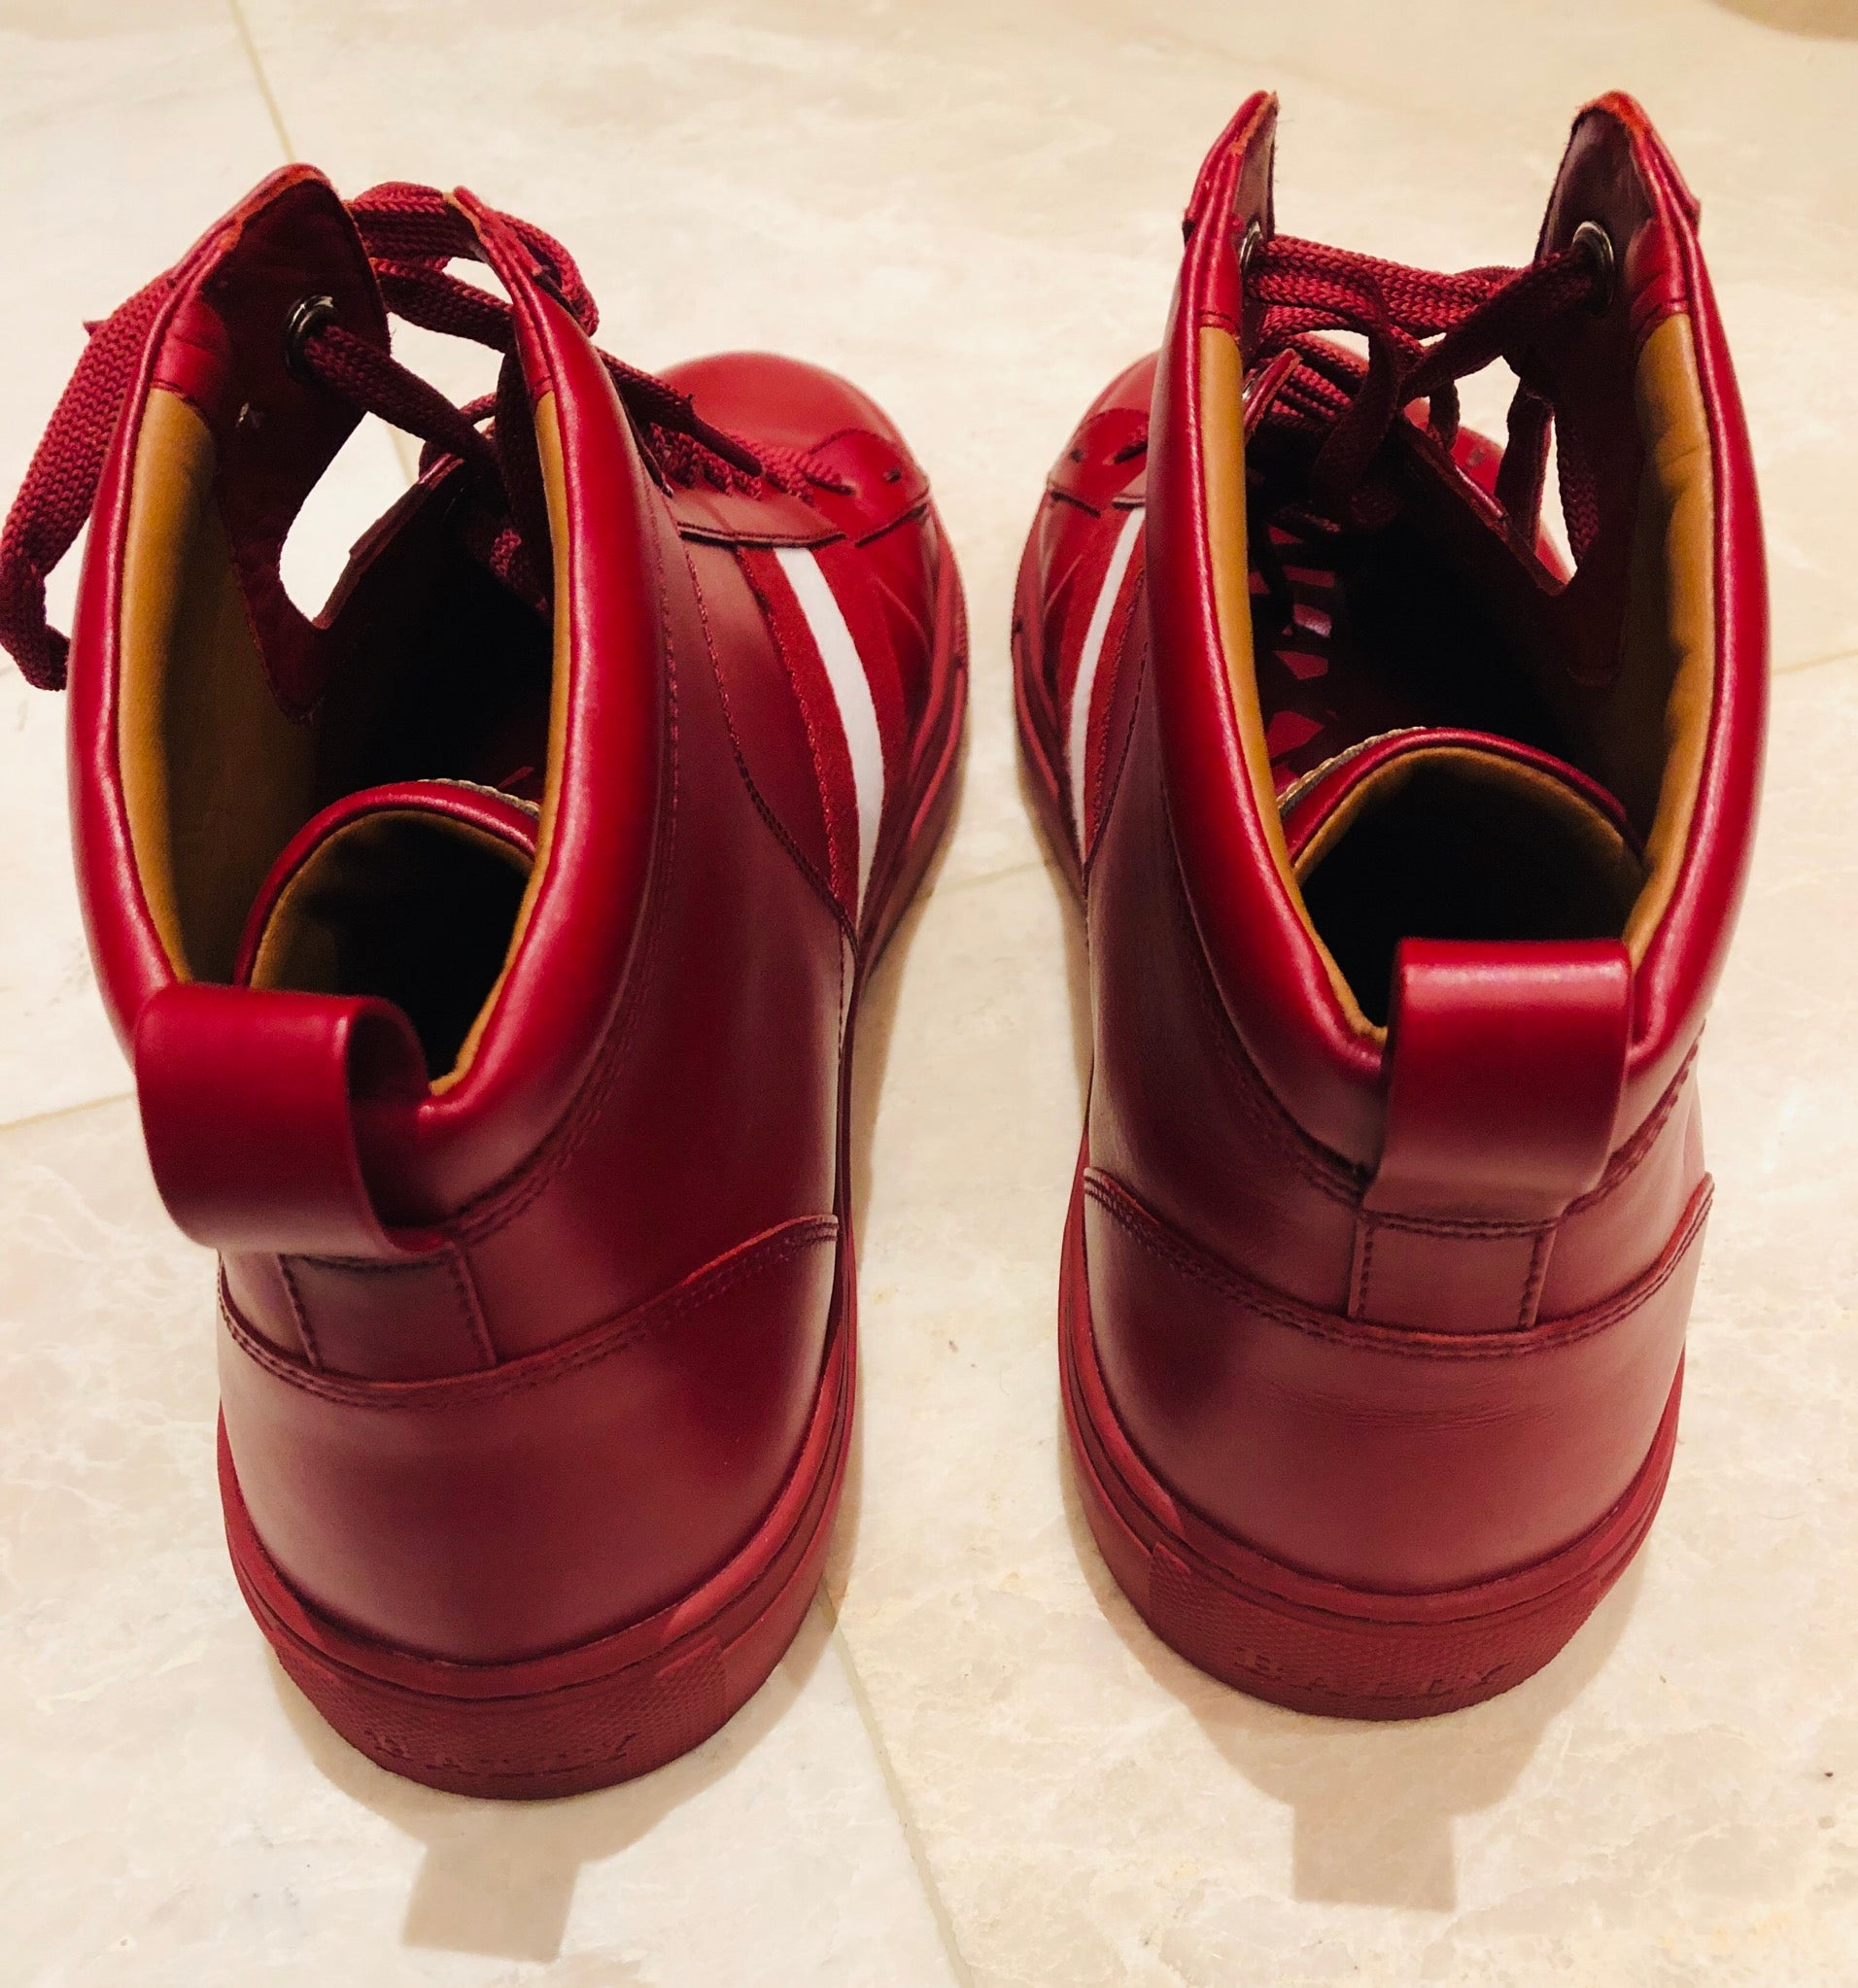 Bally Oldani Red Leather High Top